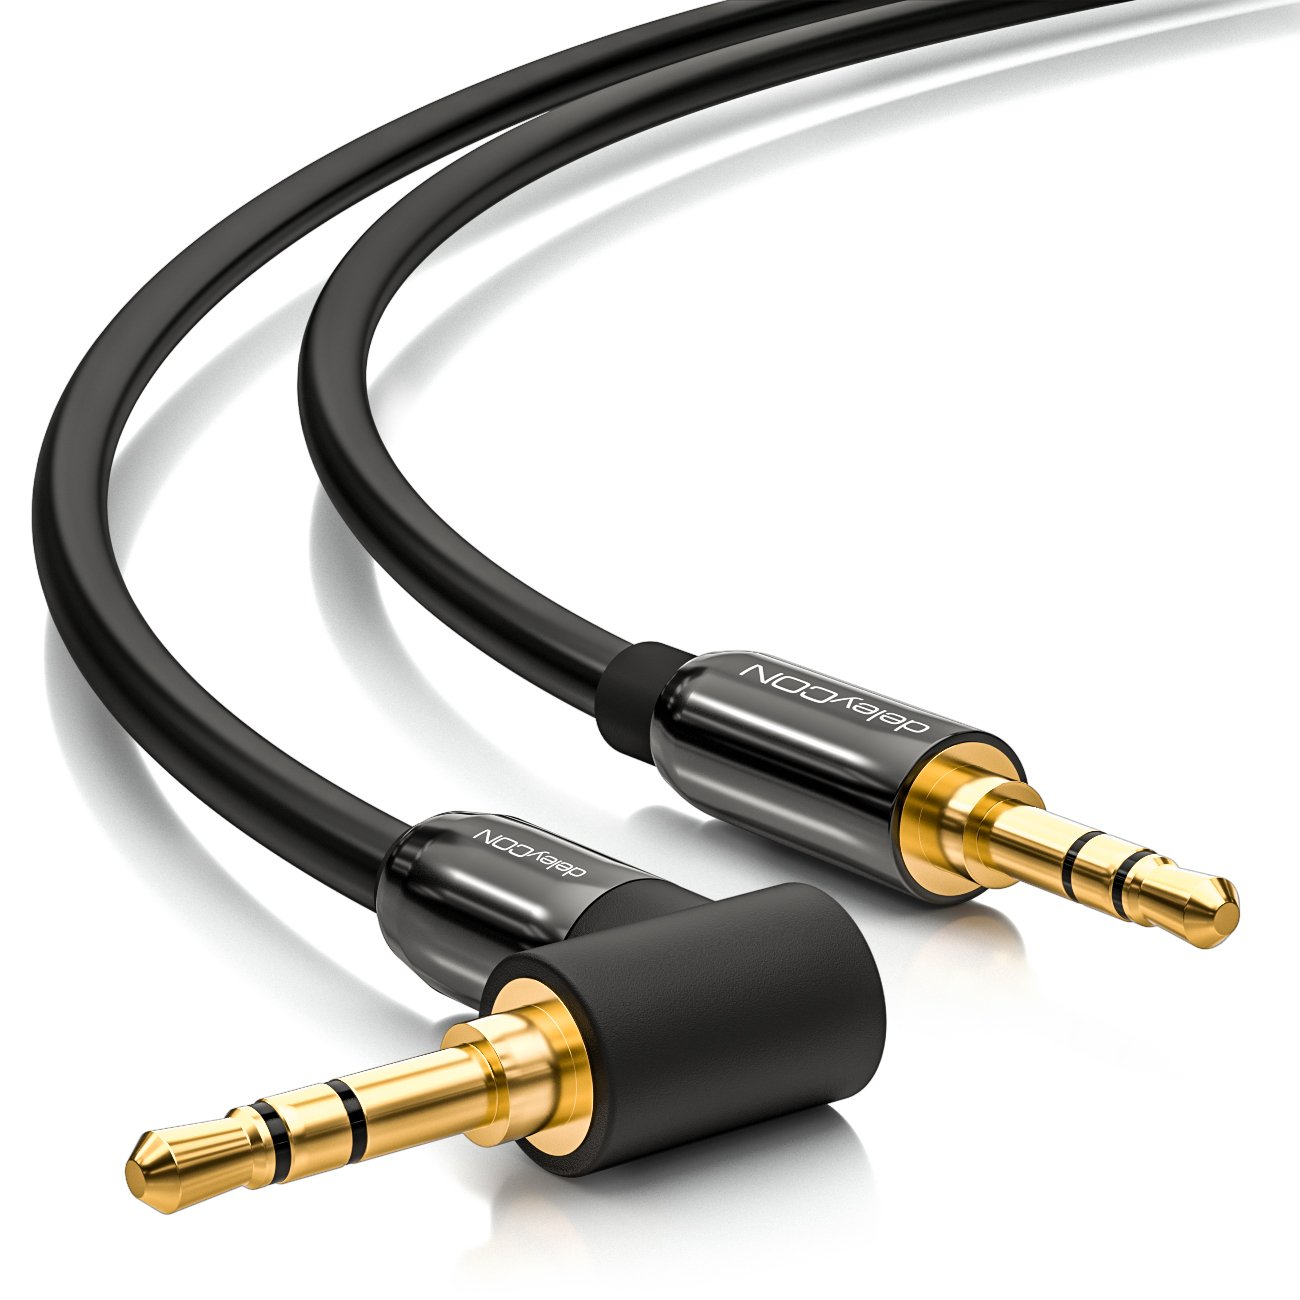 deleyCON 1m Klinkenkabel 3,5mm AUX Kabel Stereo Audio: Amazon.de ...